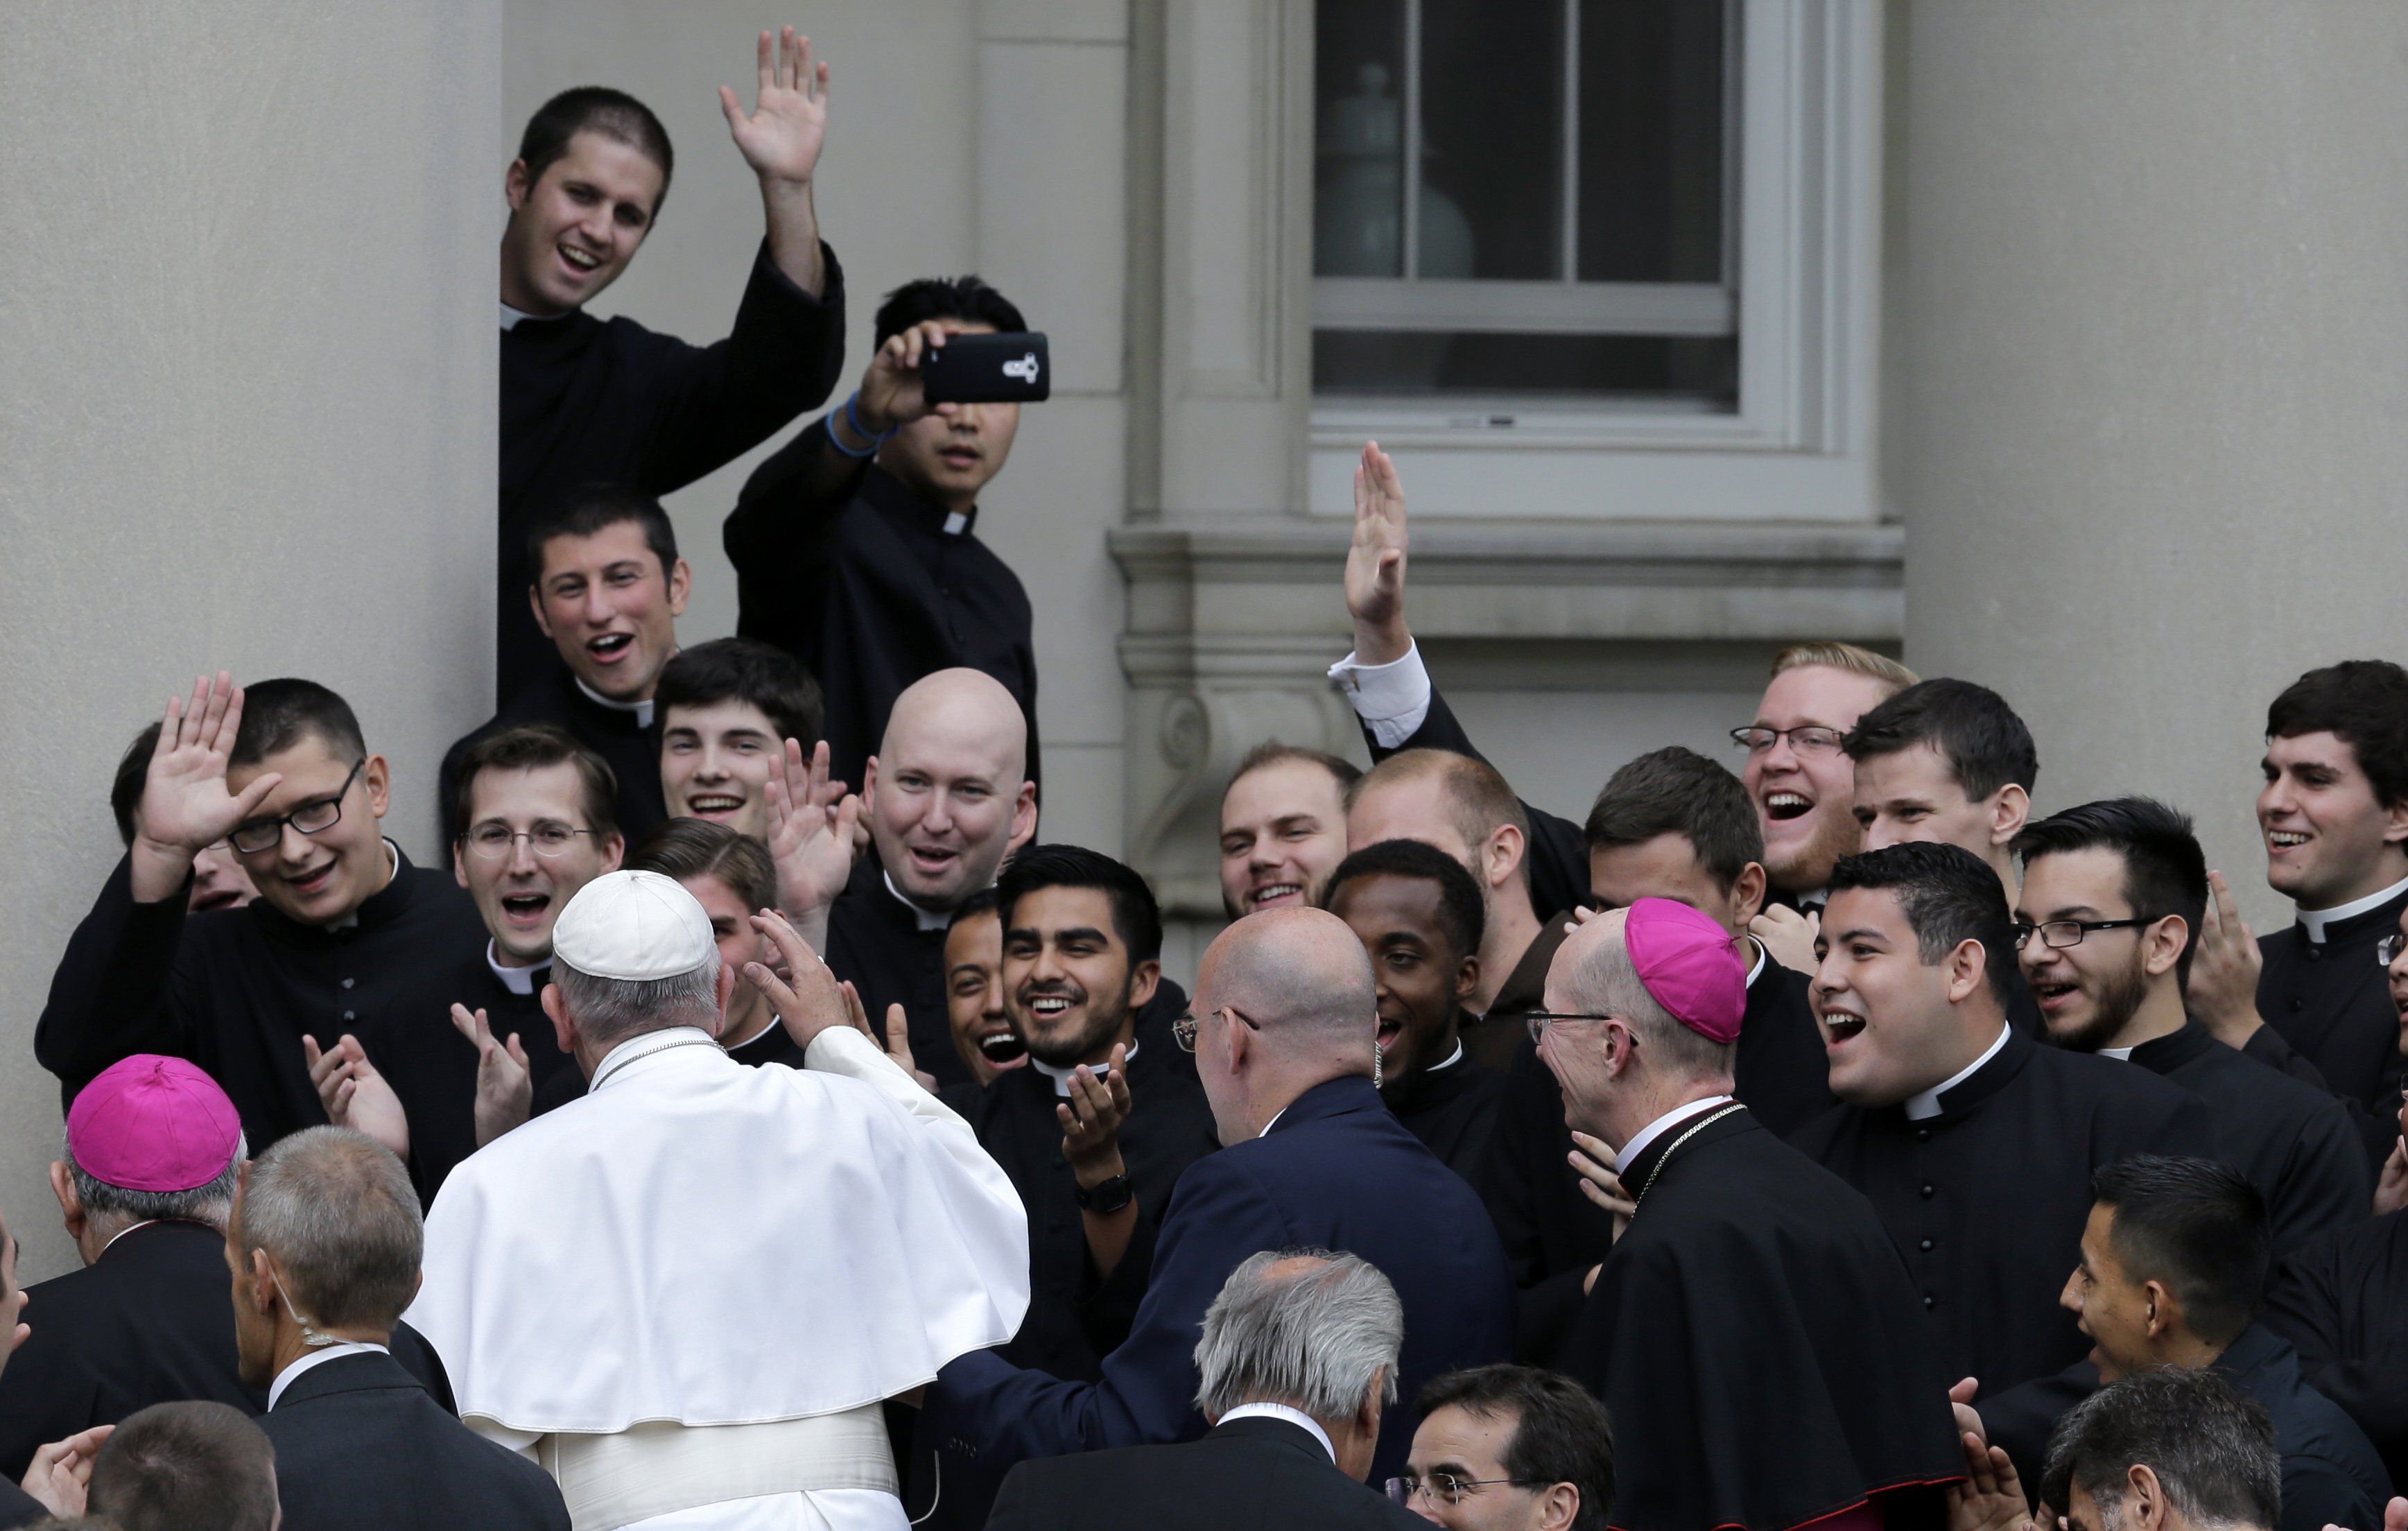 Pope Francis is greeted by seminarians as he arrives at St. Charles Borromeo Seminary, on Sept. 26, 2015, in Wynnewood, Pa.